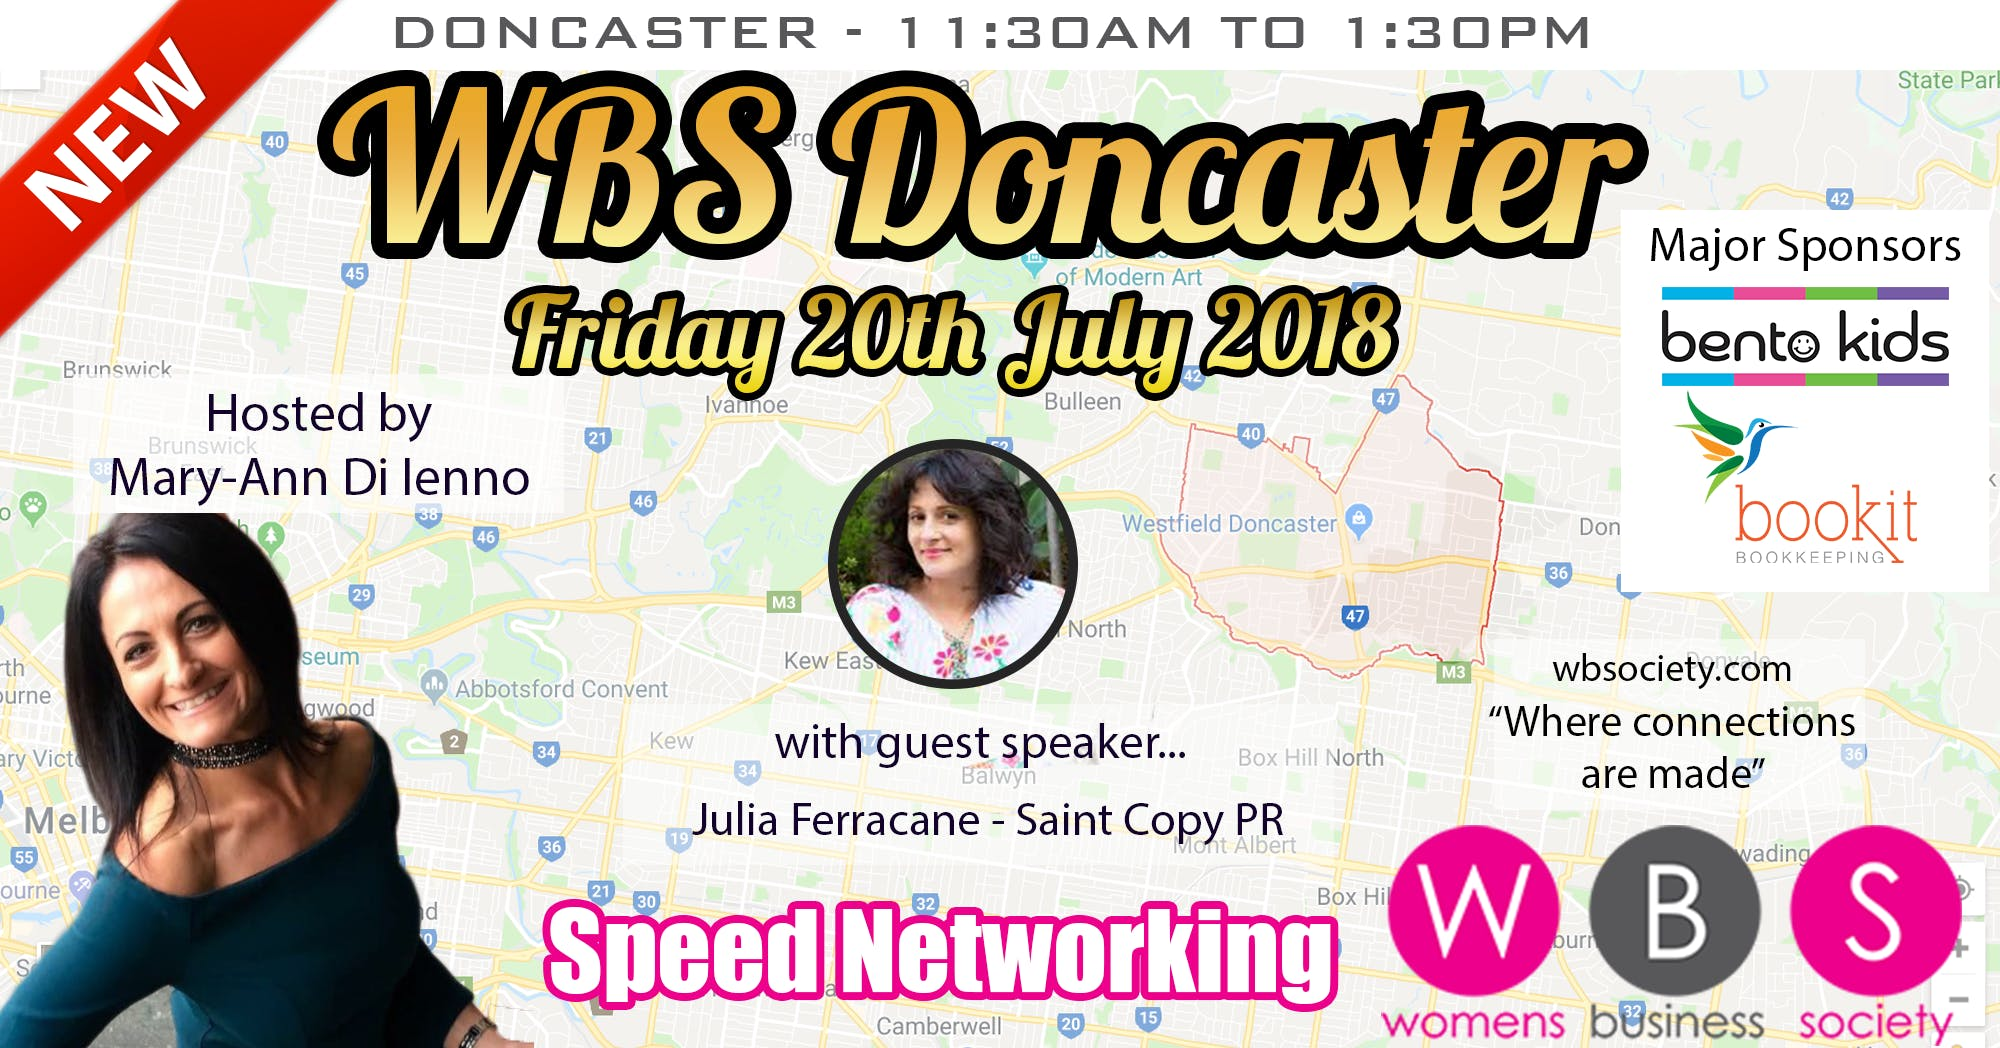 WBS Launch Event Doncaster - 20th July